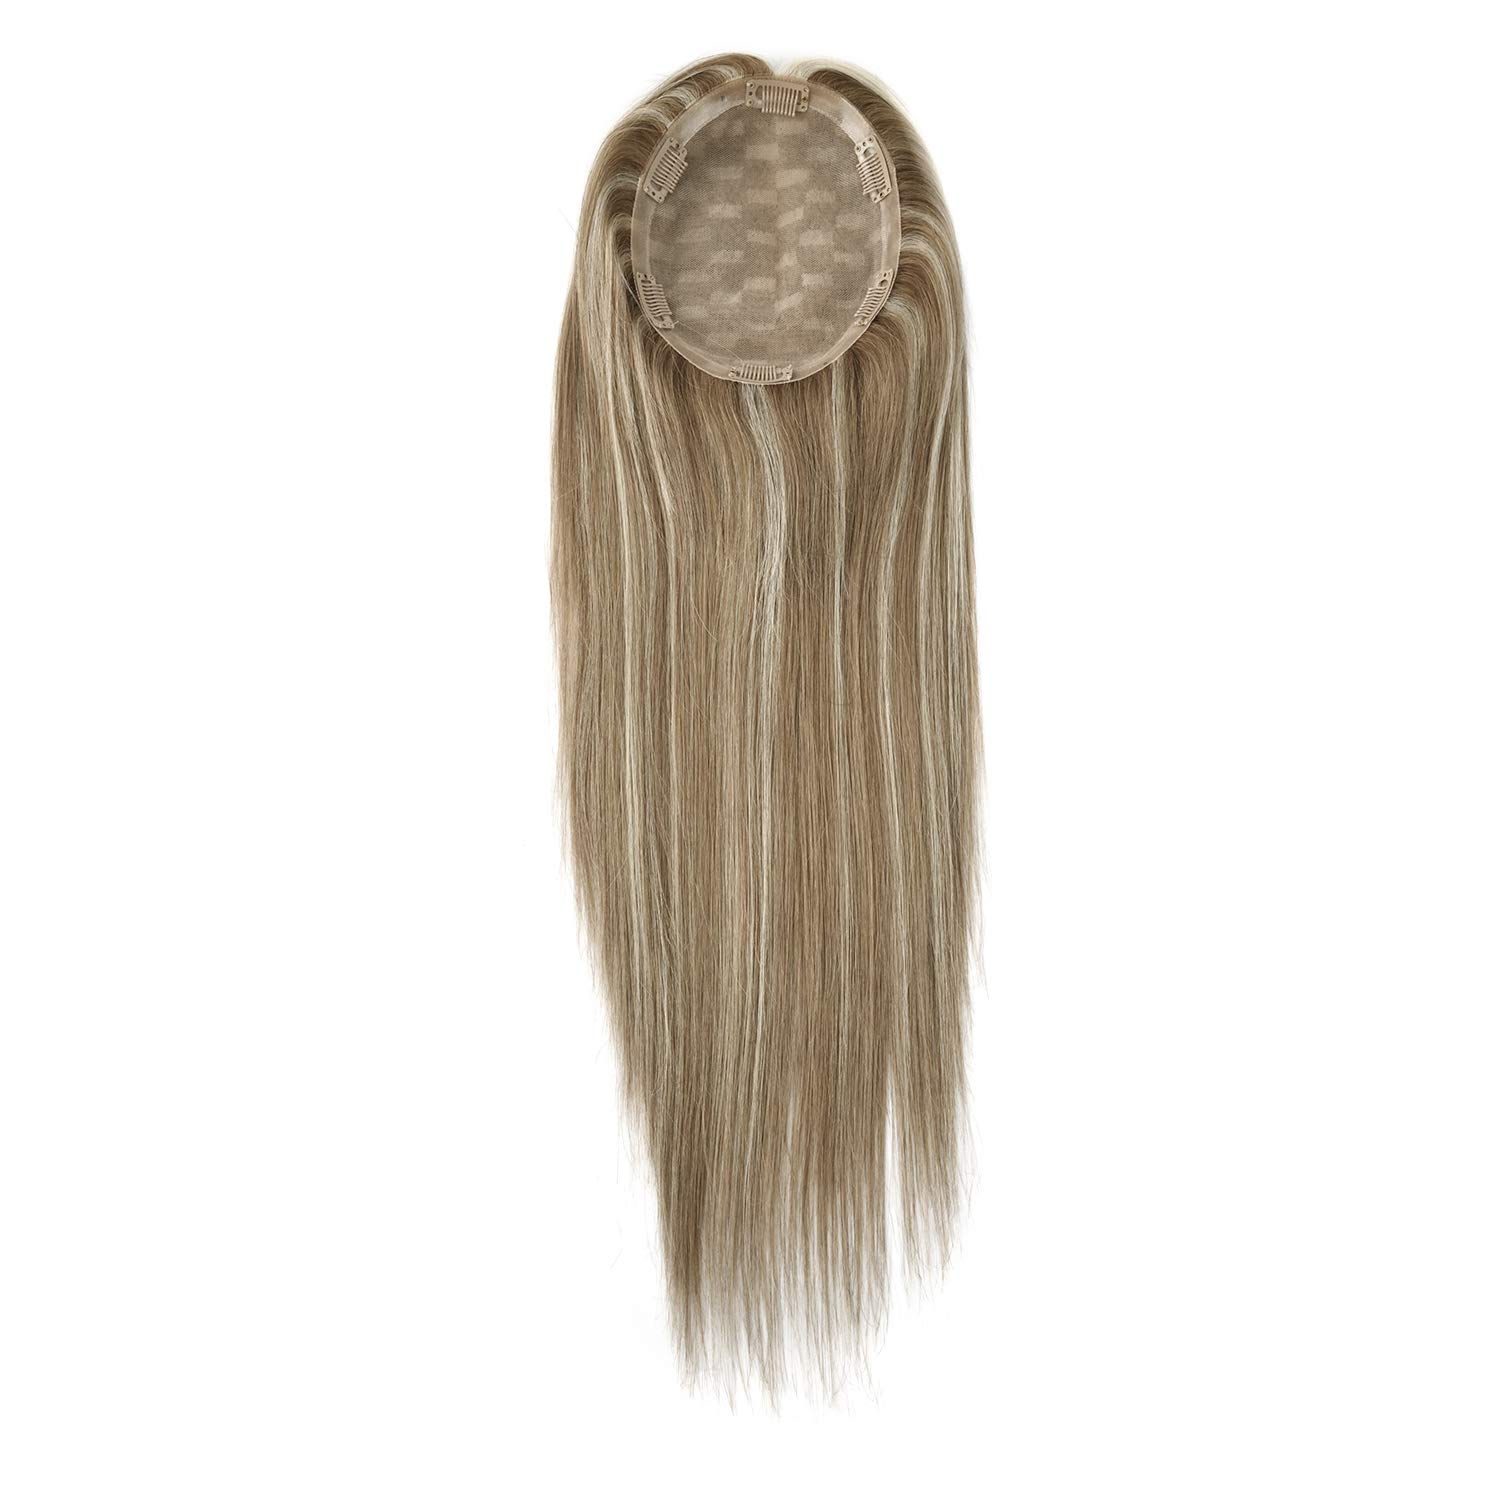 Neitsi 6inch X 7inch Silk Base Real Human Hair Topper for Women Top Hairpiece Clips Replacement Extensions for Hair Loss Thinning Hair (16inch, T6-8-22#)